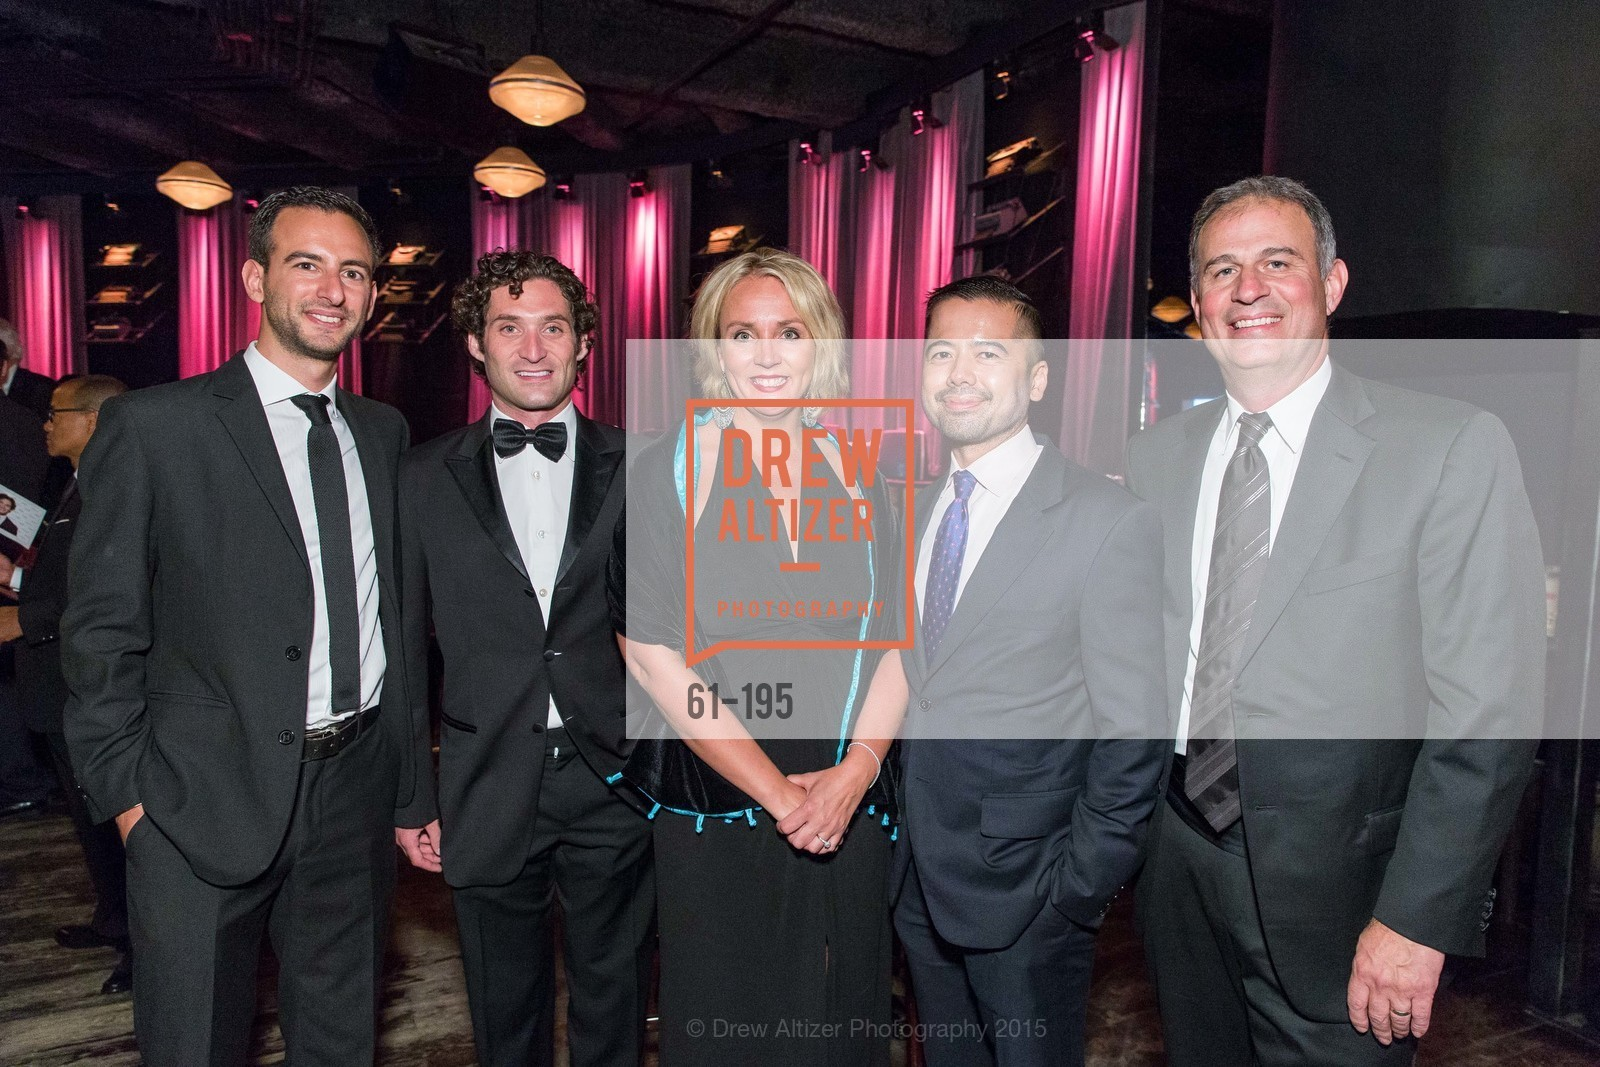 Ori Zohar, Justin Fichelson, Ginger Wilcox, Job Danganan, Nick Stamos, Climb Real Estate and Sindeo Celebrate the Launch of Million Dollar Listing San Francisco, Local Edition San Francisco. 691 Market St, July 8th, 2015,Drew Altizer, Drew Altizer Photography, full-service event agency, private events, San Francisco photographer, photographer California